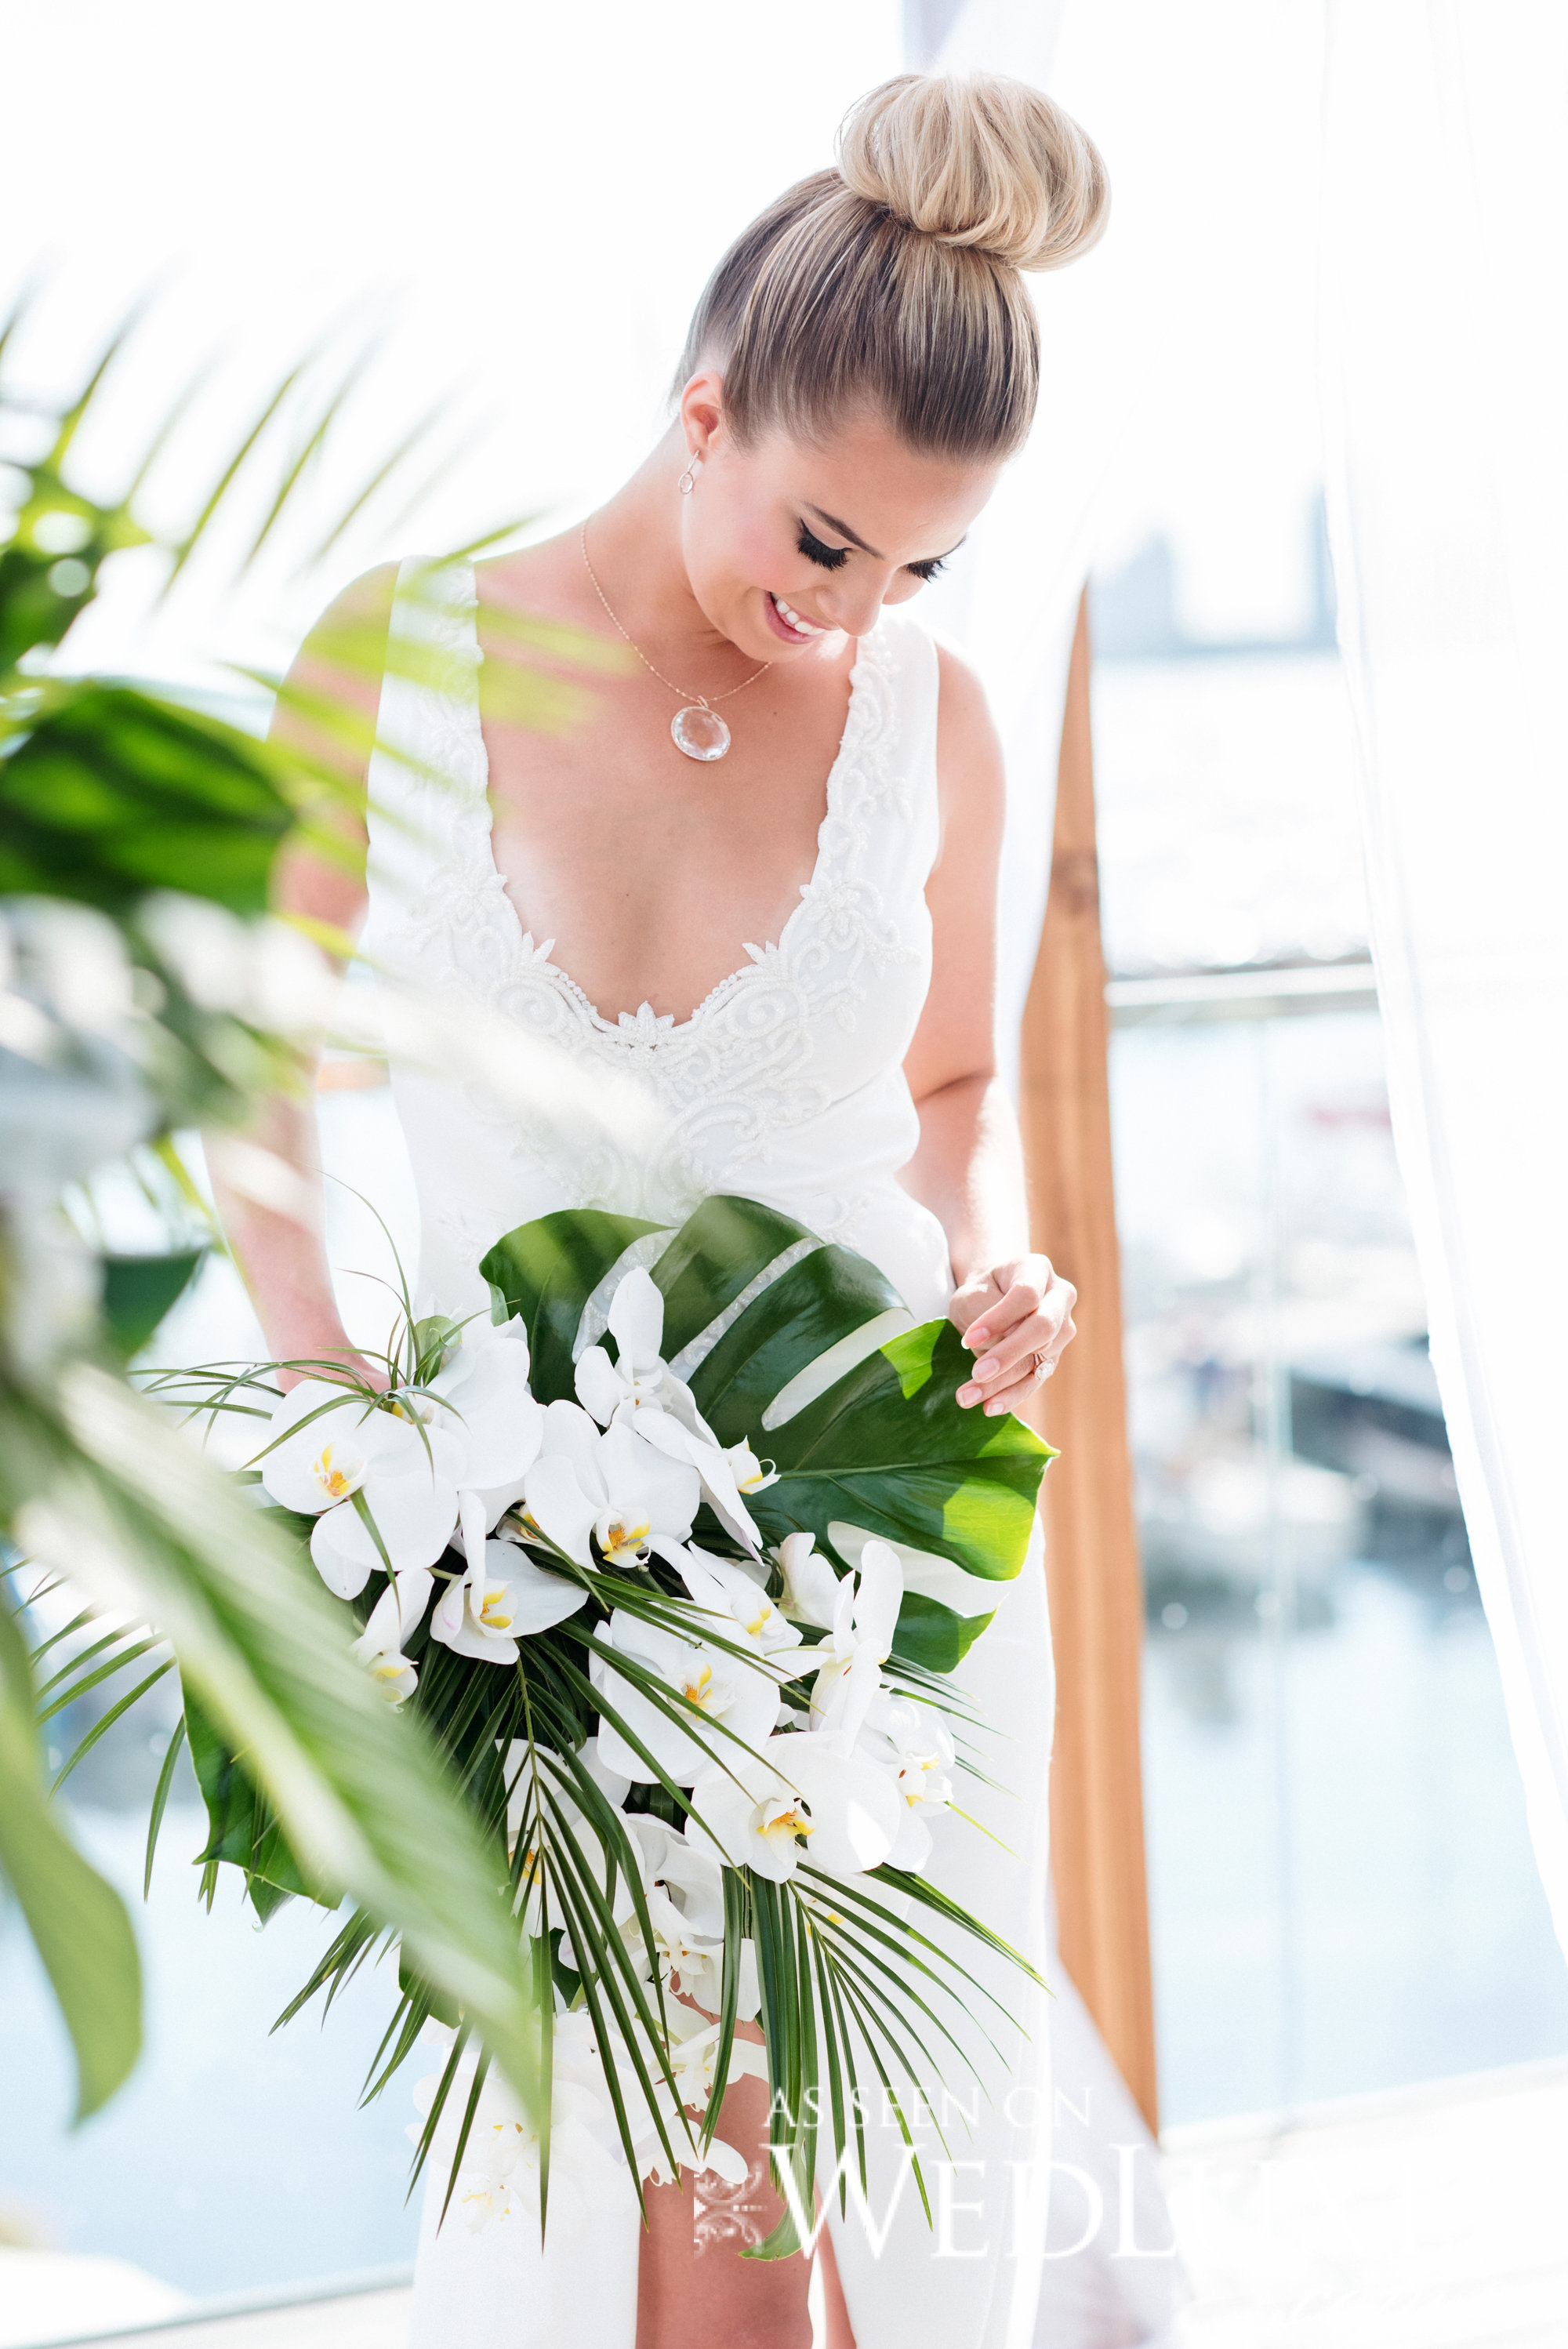 August In Bloom - Wedluxe Palma Dolce Bride with Lily Bouquet - Palma Dolce